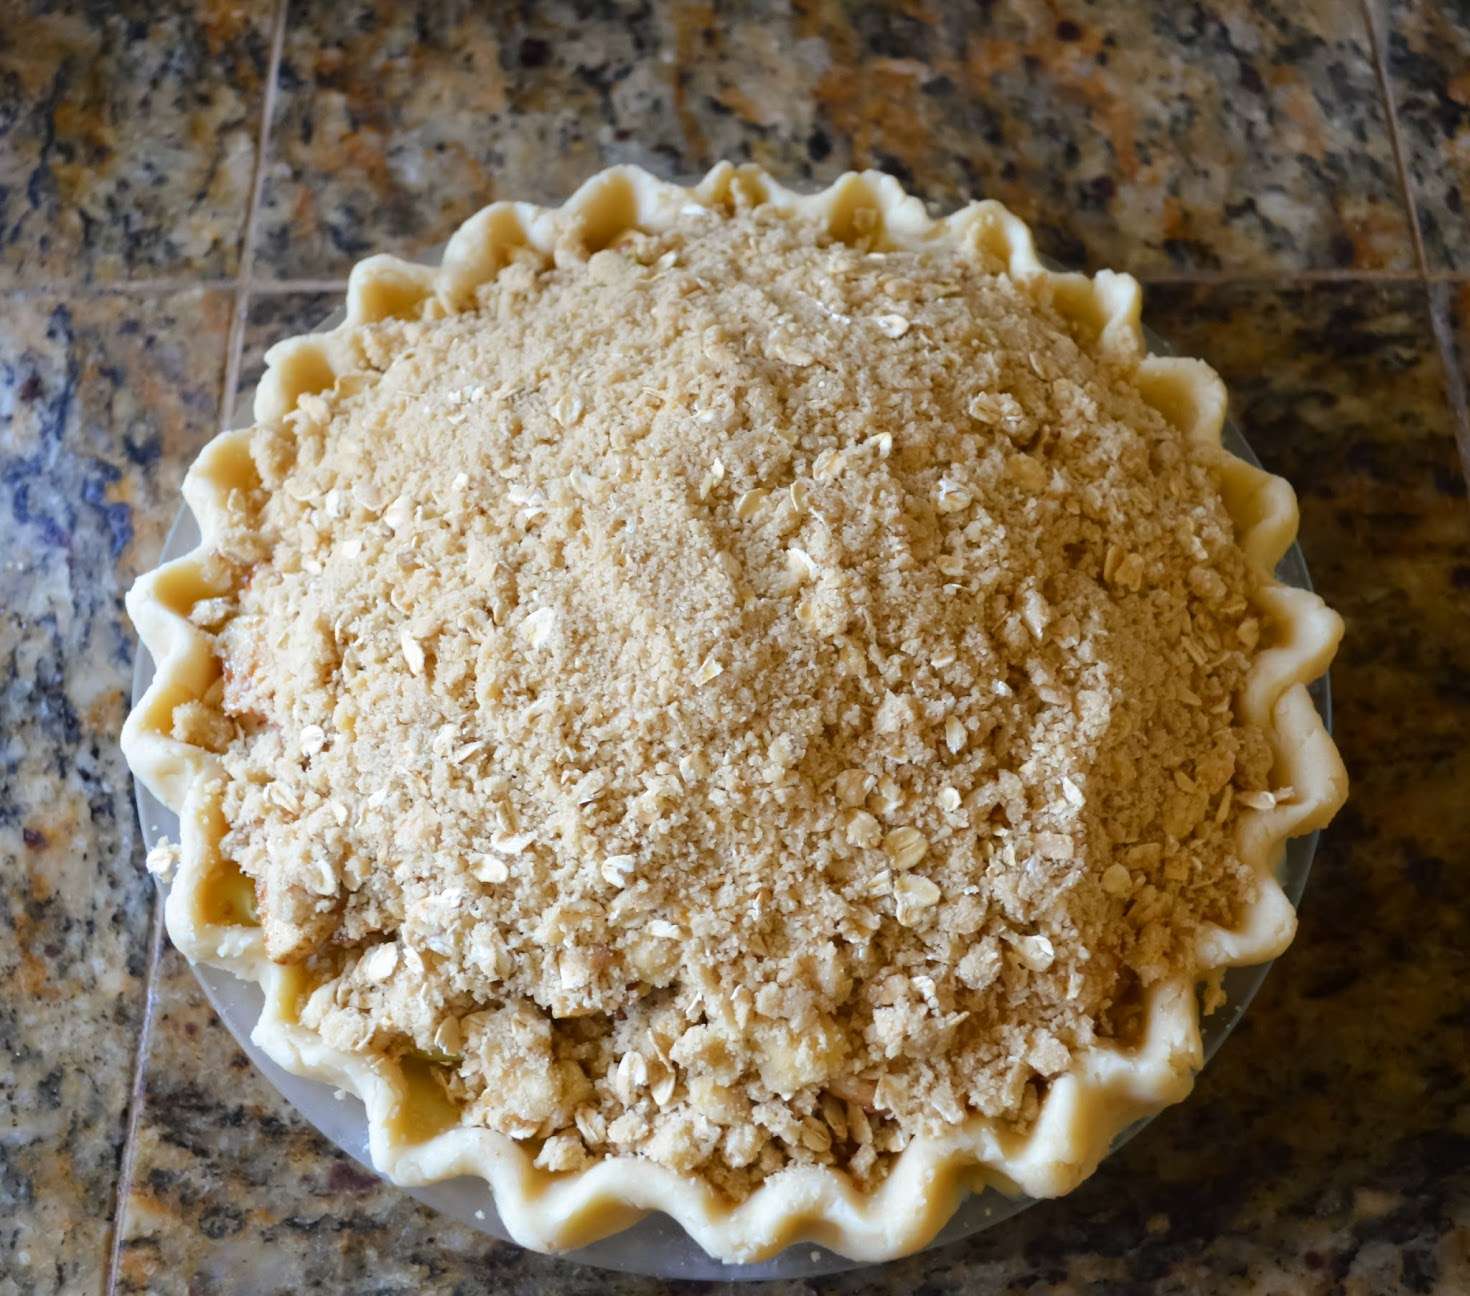 Caramely-Apple-Pie-With-Crunch-Topping-Oven.jpg